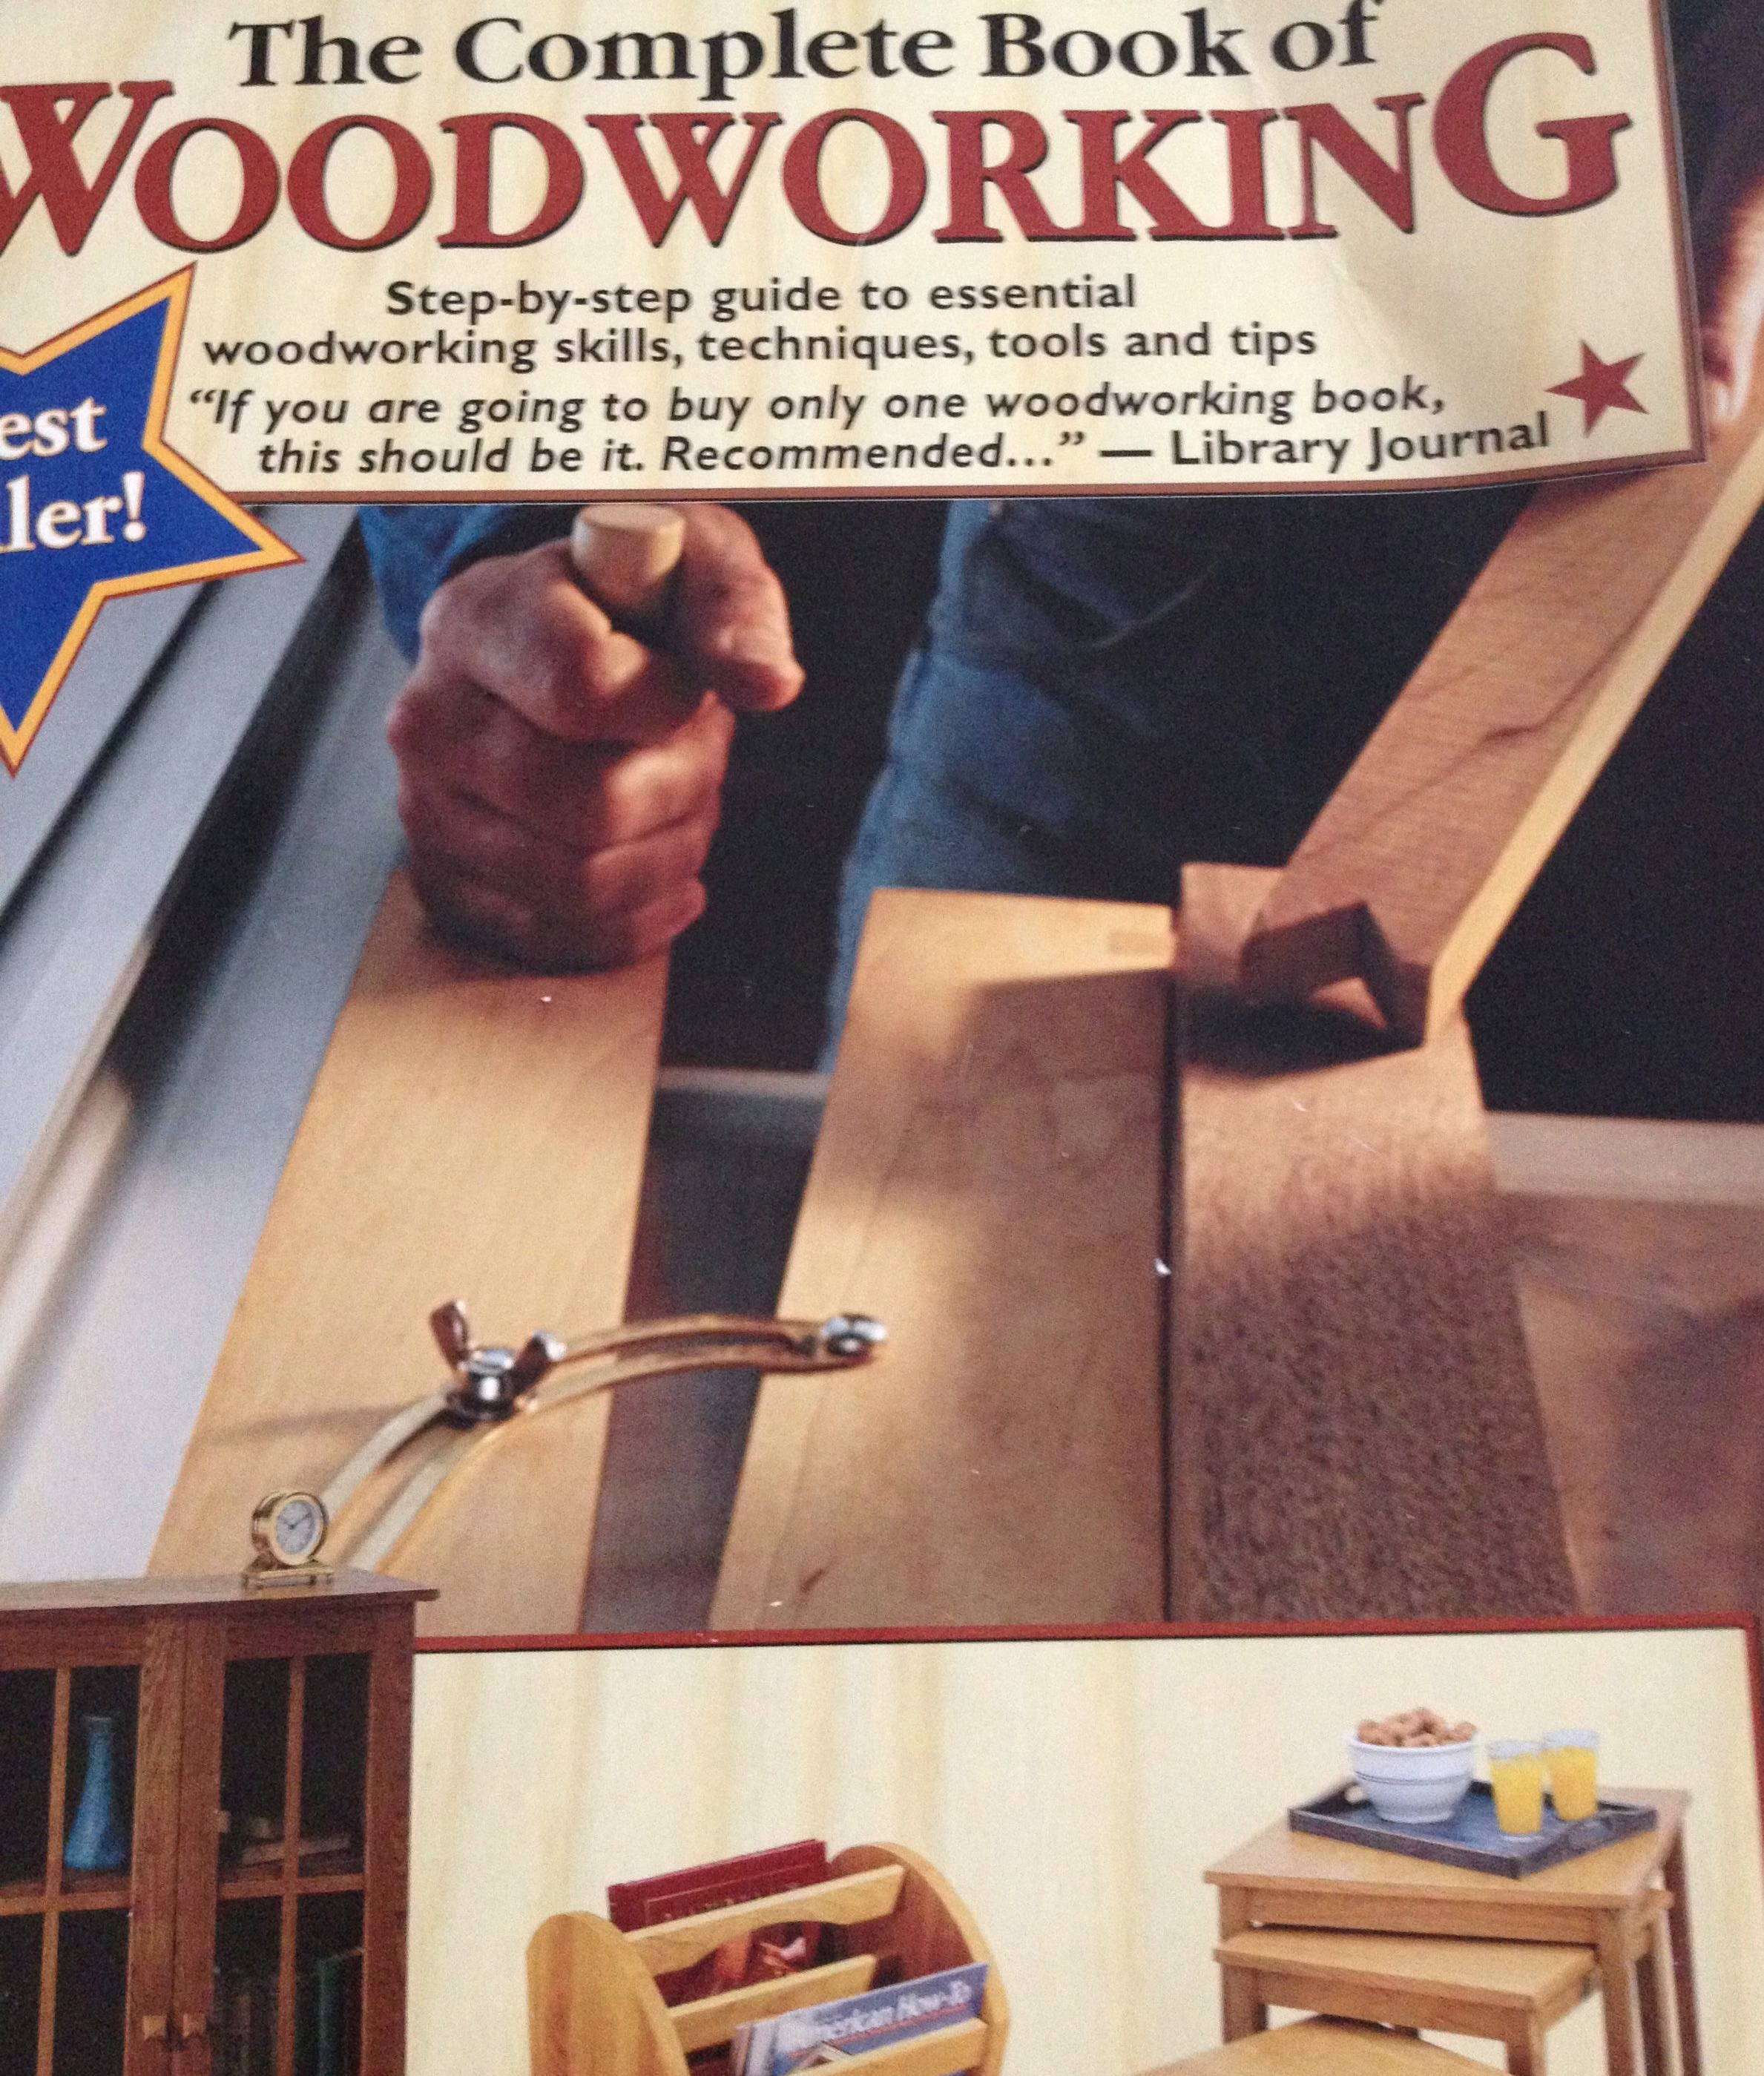 The COMPLETE Book of Woodworking. Sure.